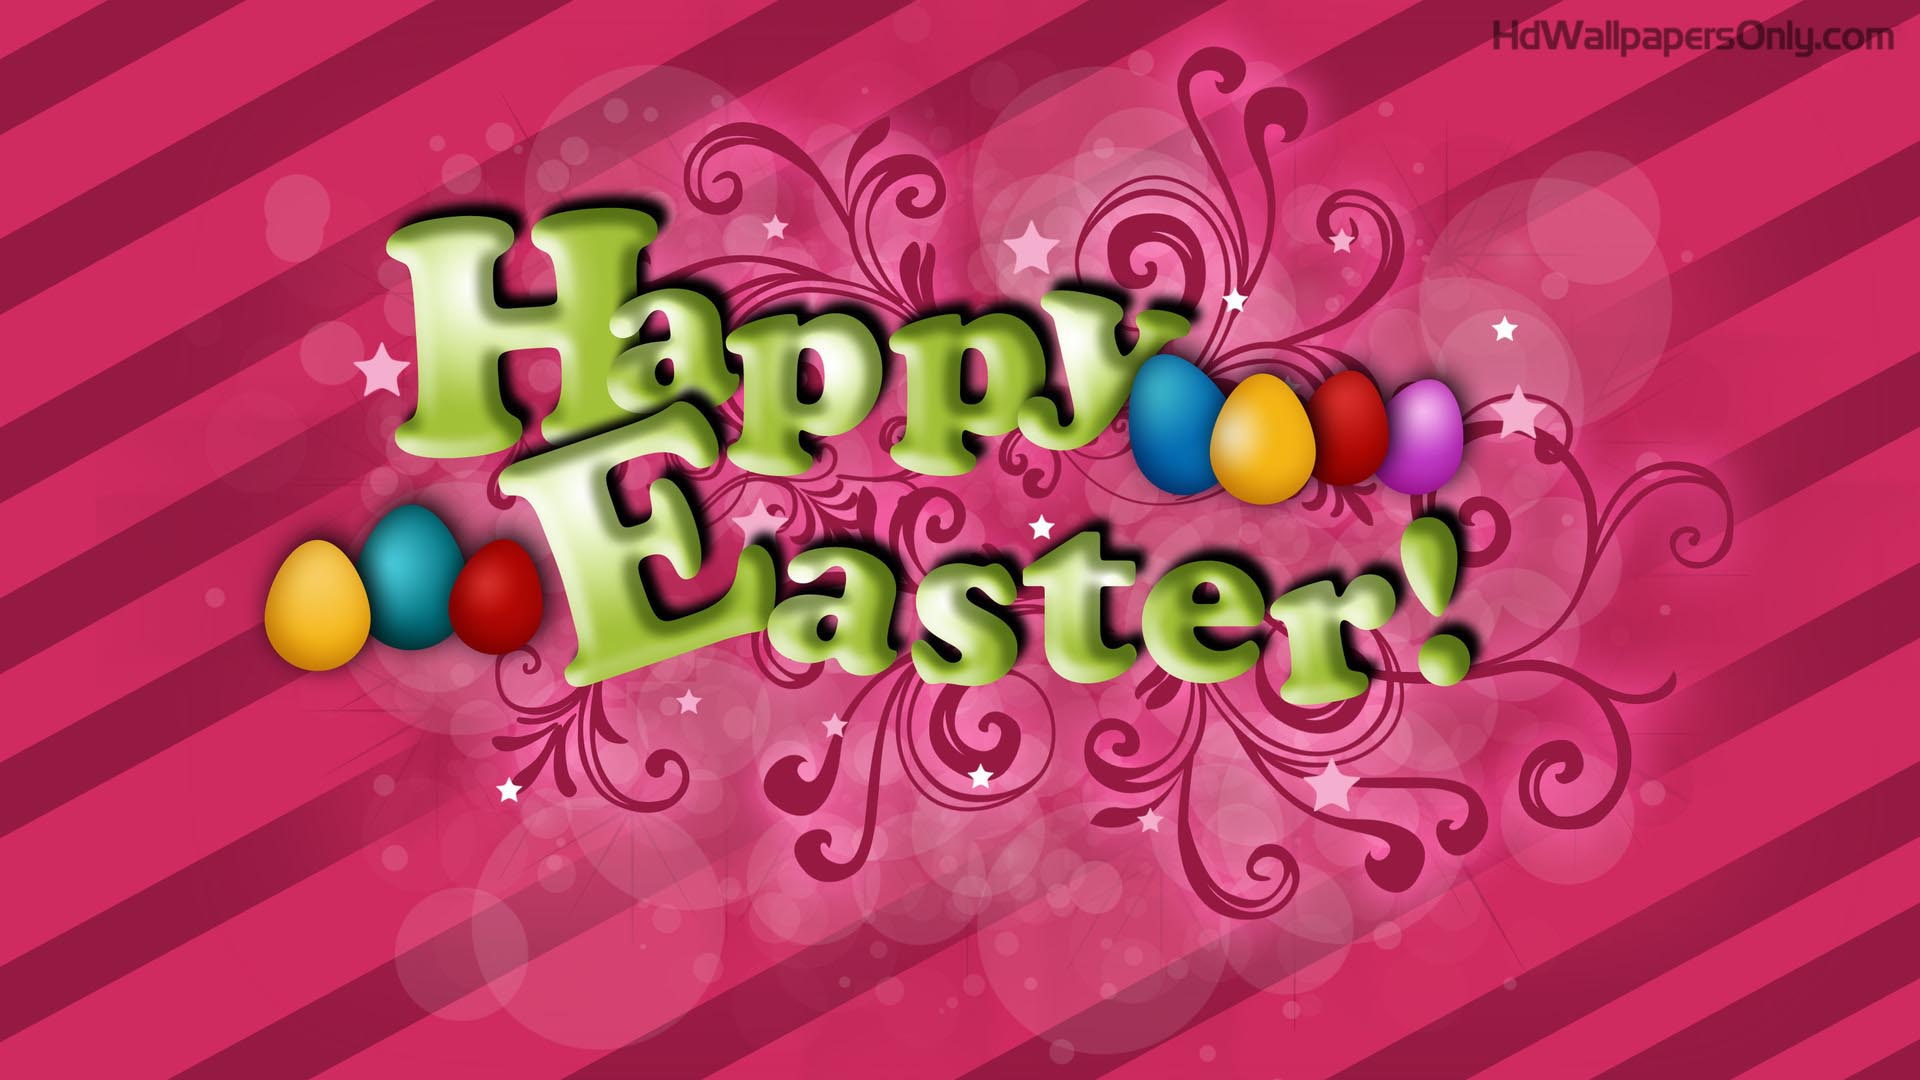 Easter Wallpaper Hd Download Free: Happy Easter Wallpapers Free